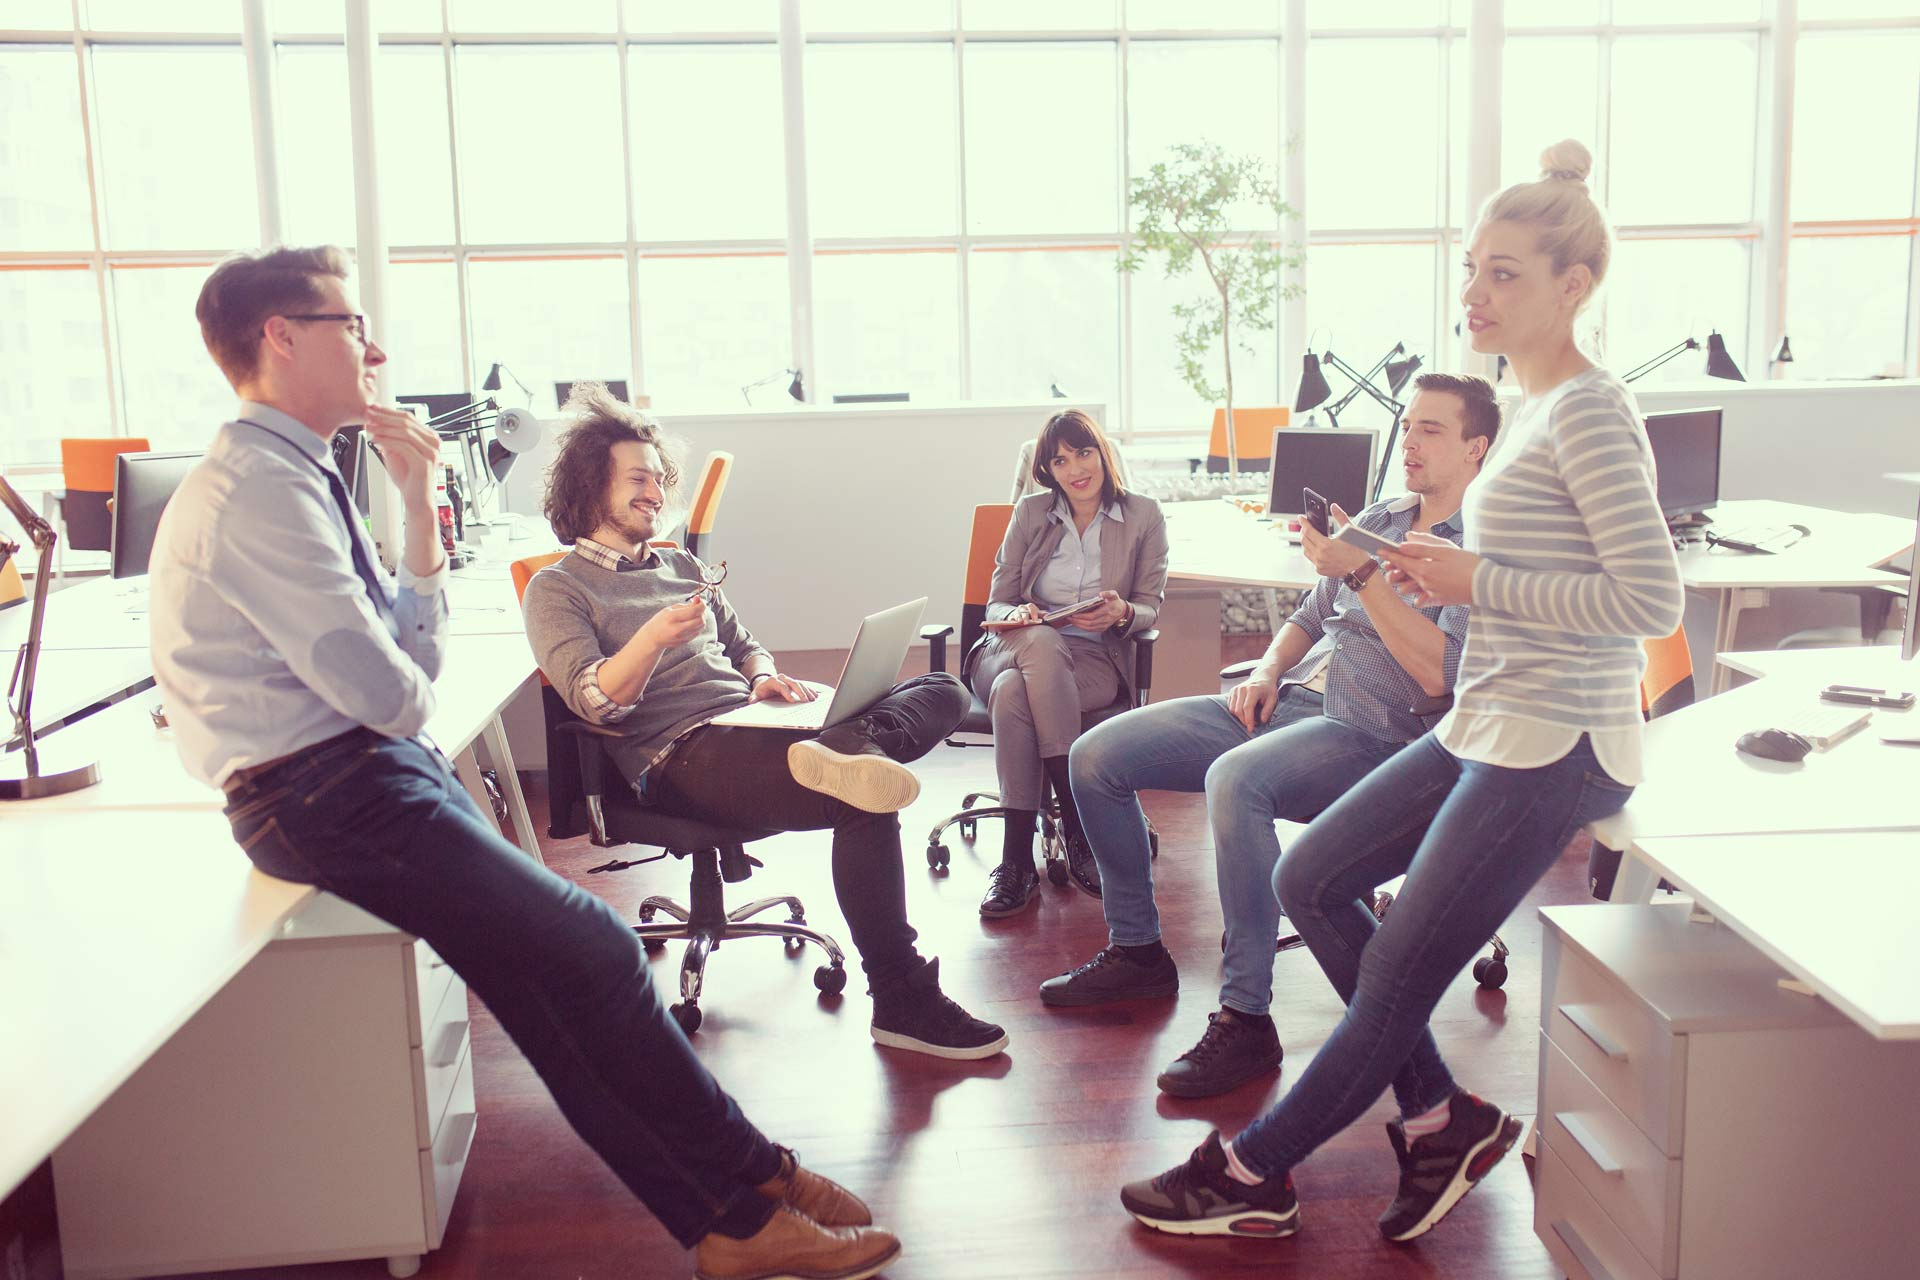 5 Team Building Activities Your Team Would Actually Love